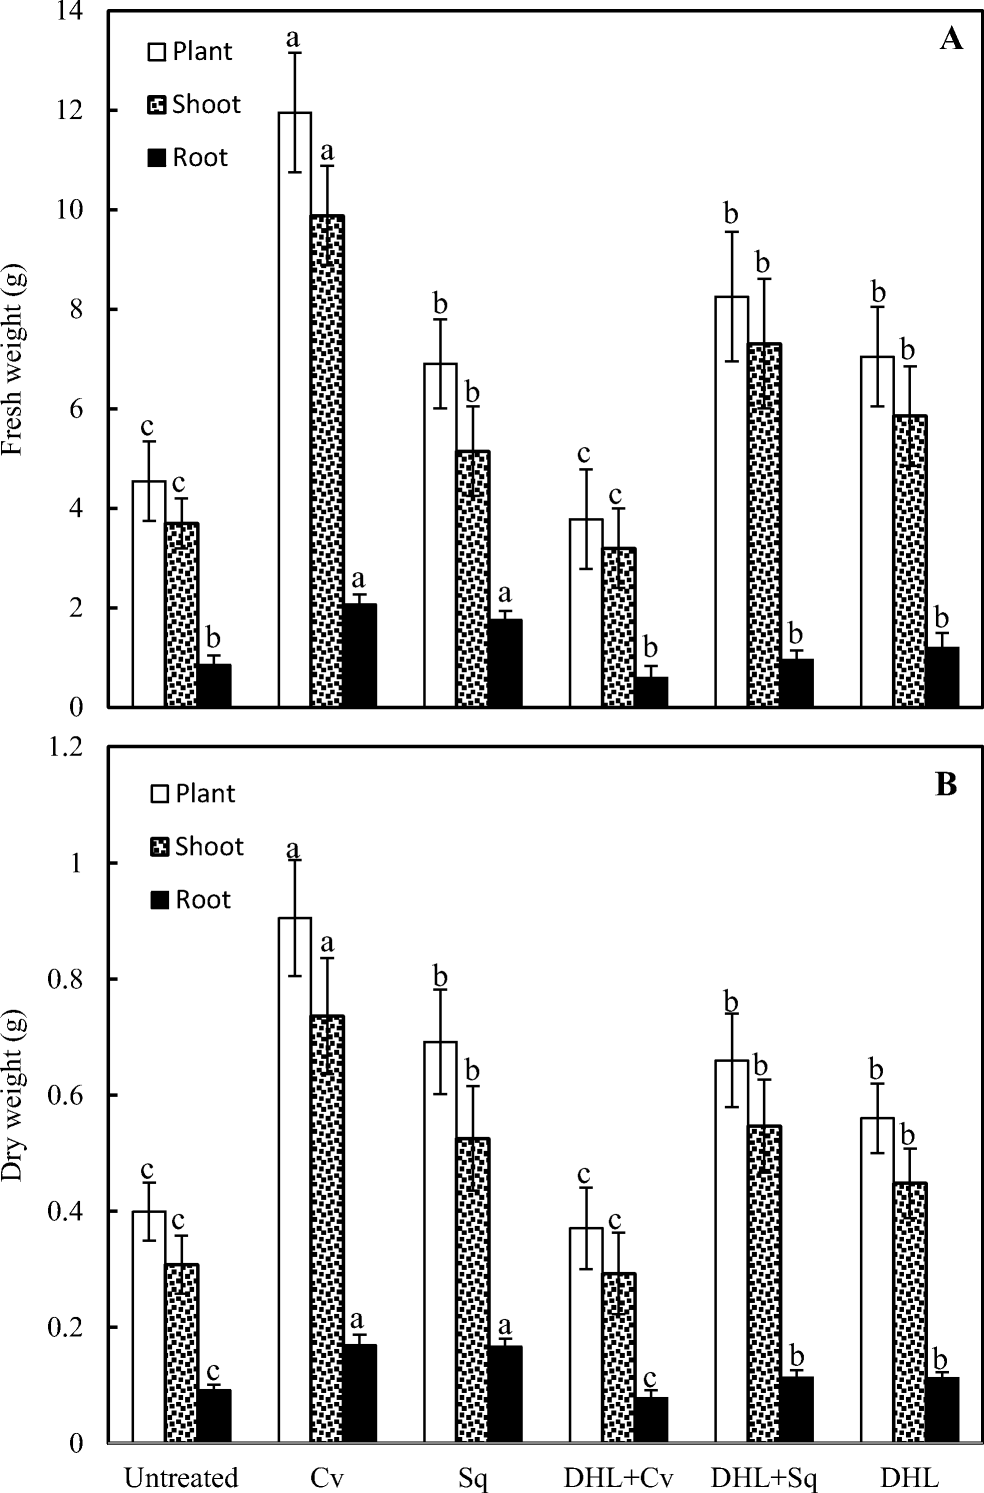 Novel Bioprocess For The Cultivation Of Microalgae In Hydroponic